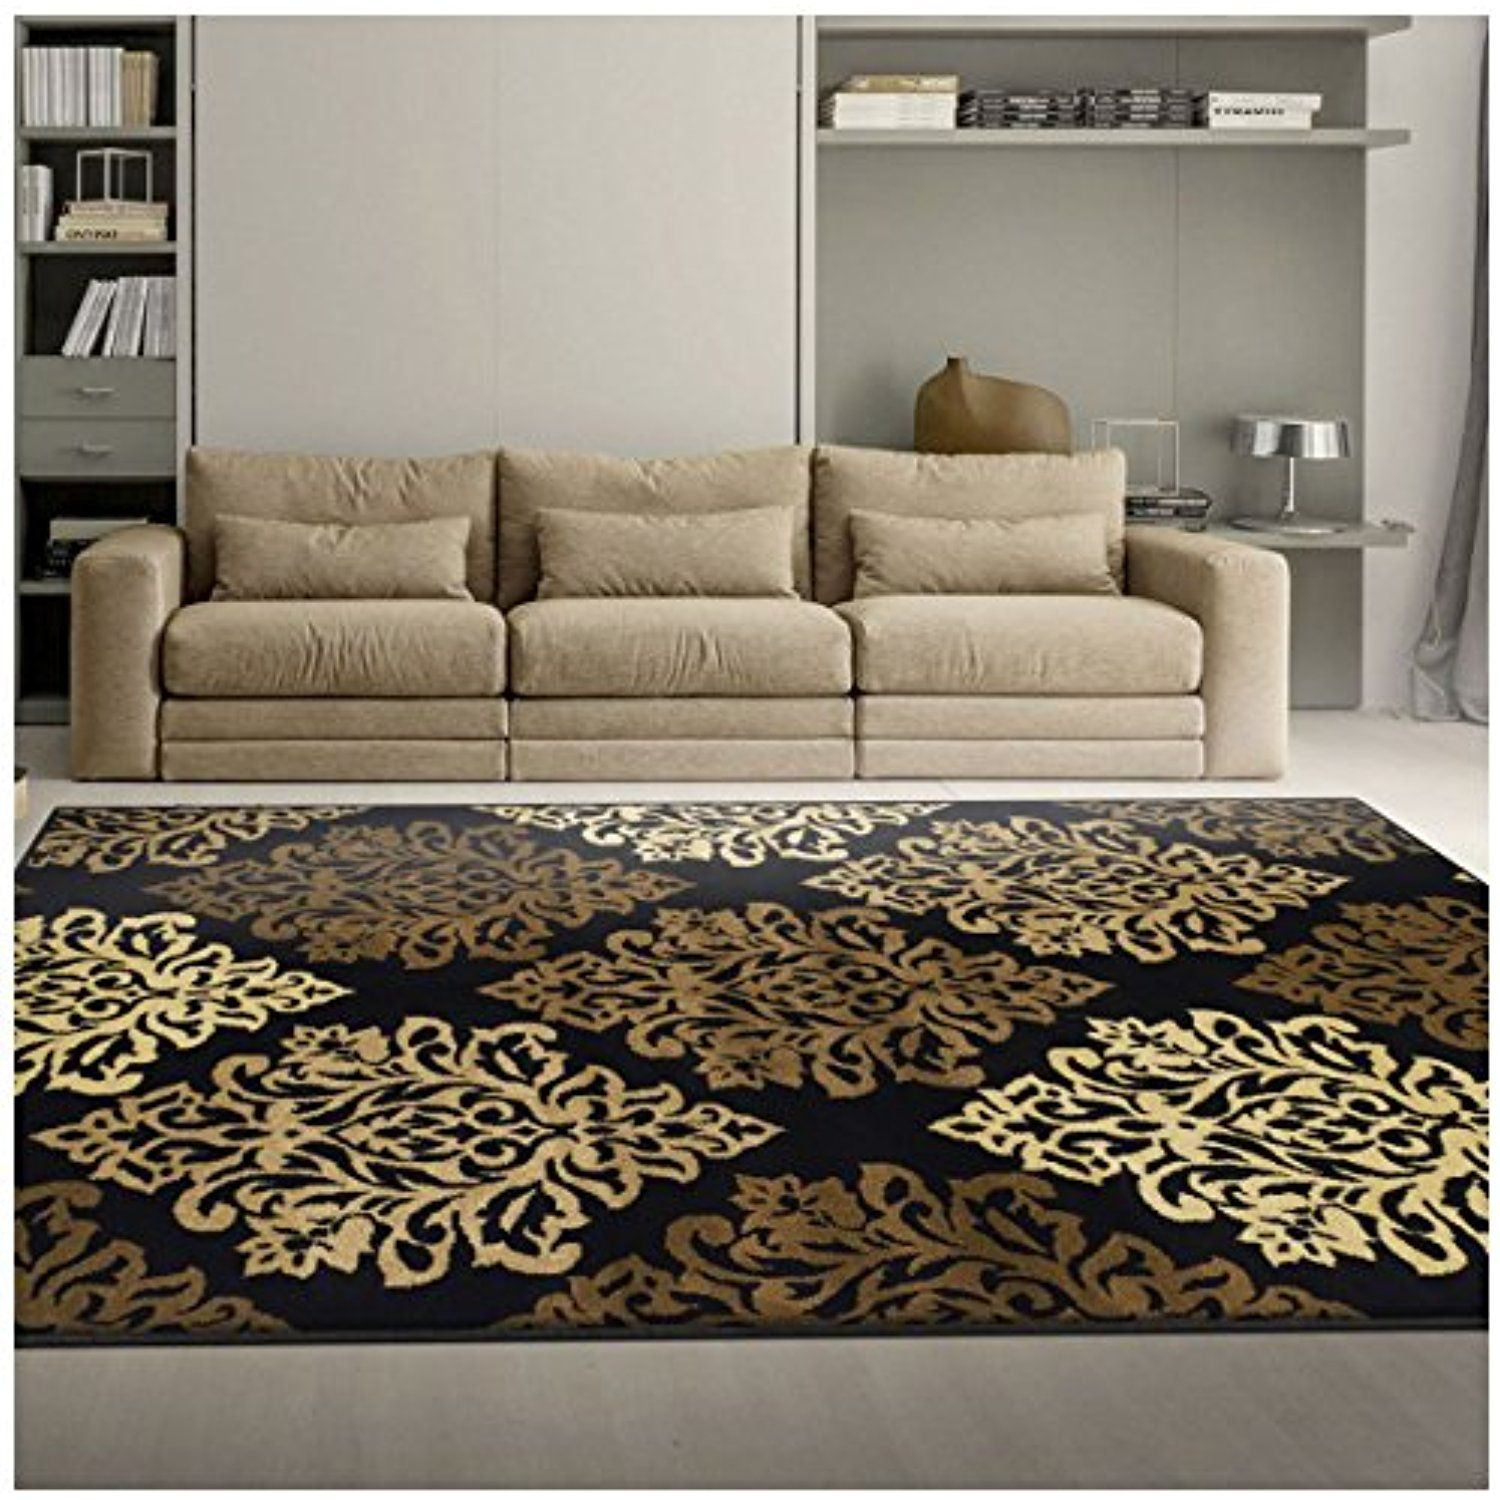 World Of Architecture 16 Simple Elegant And Affordable: Superior Danvers Collection Area Rug, Modern Elegant